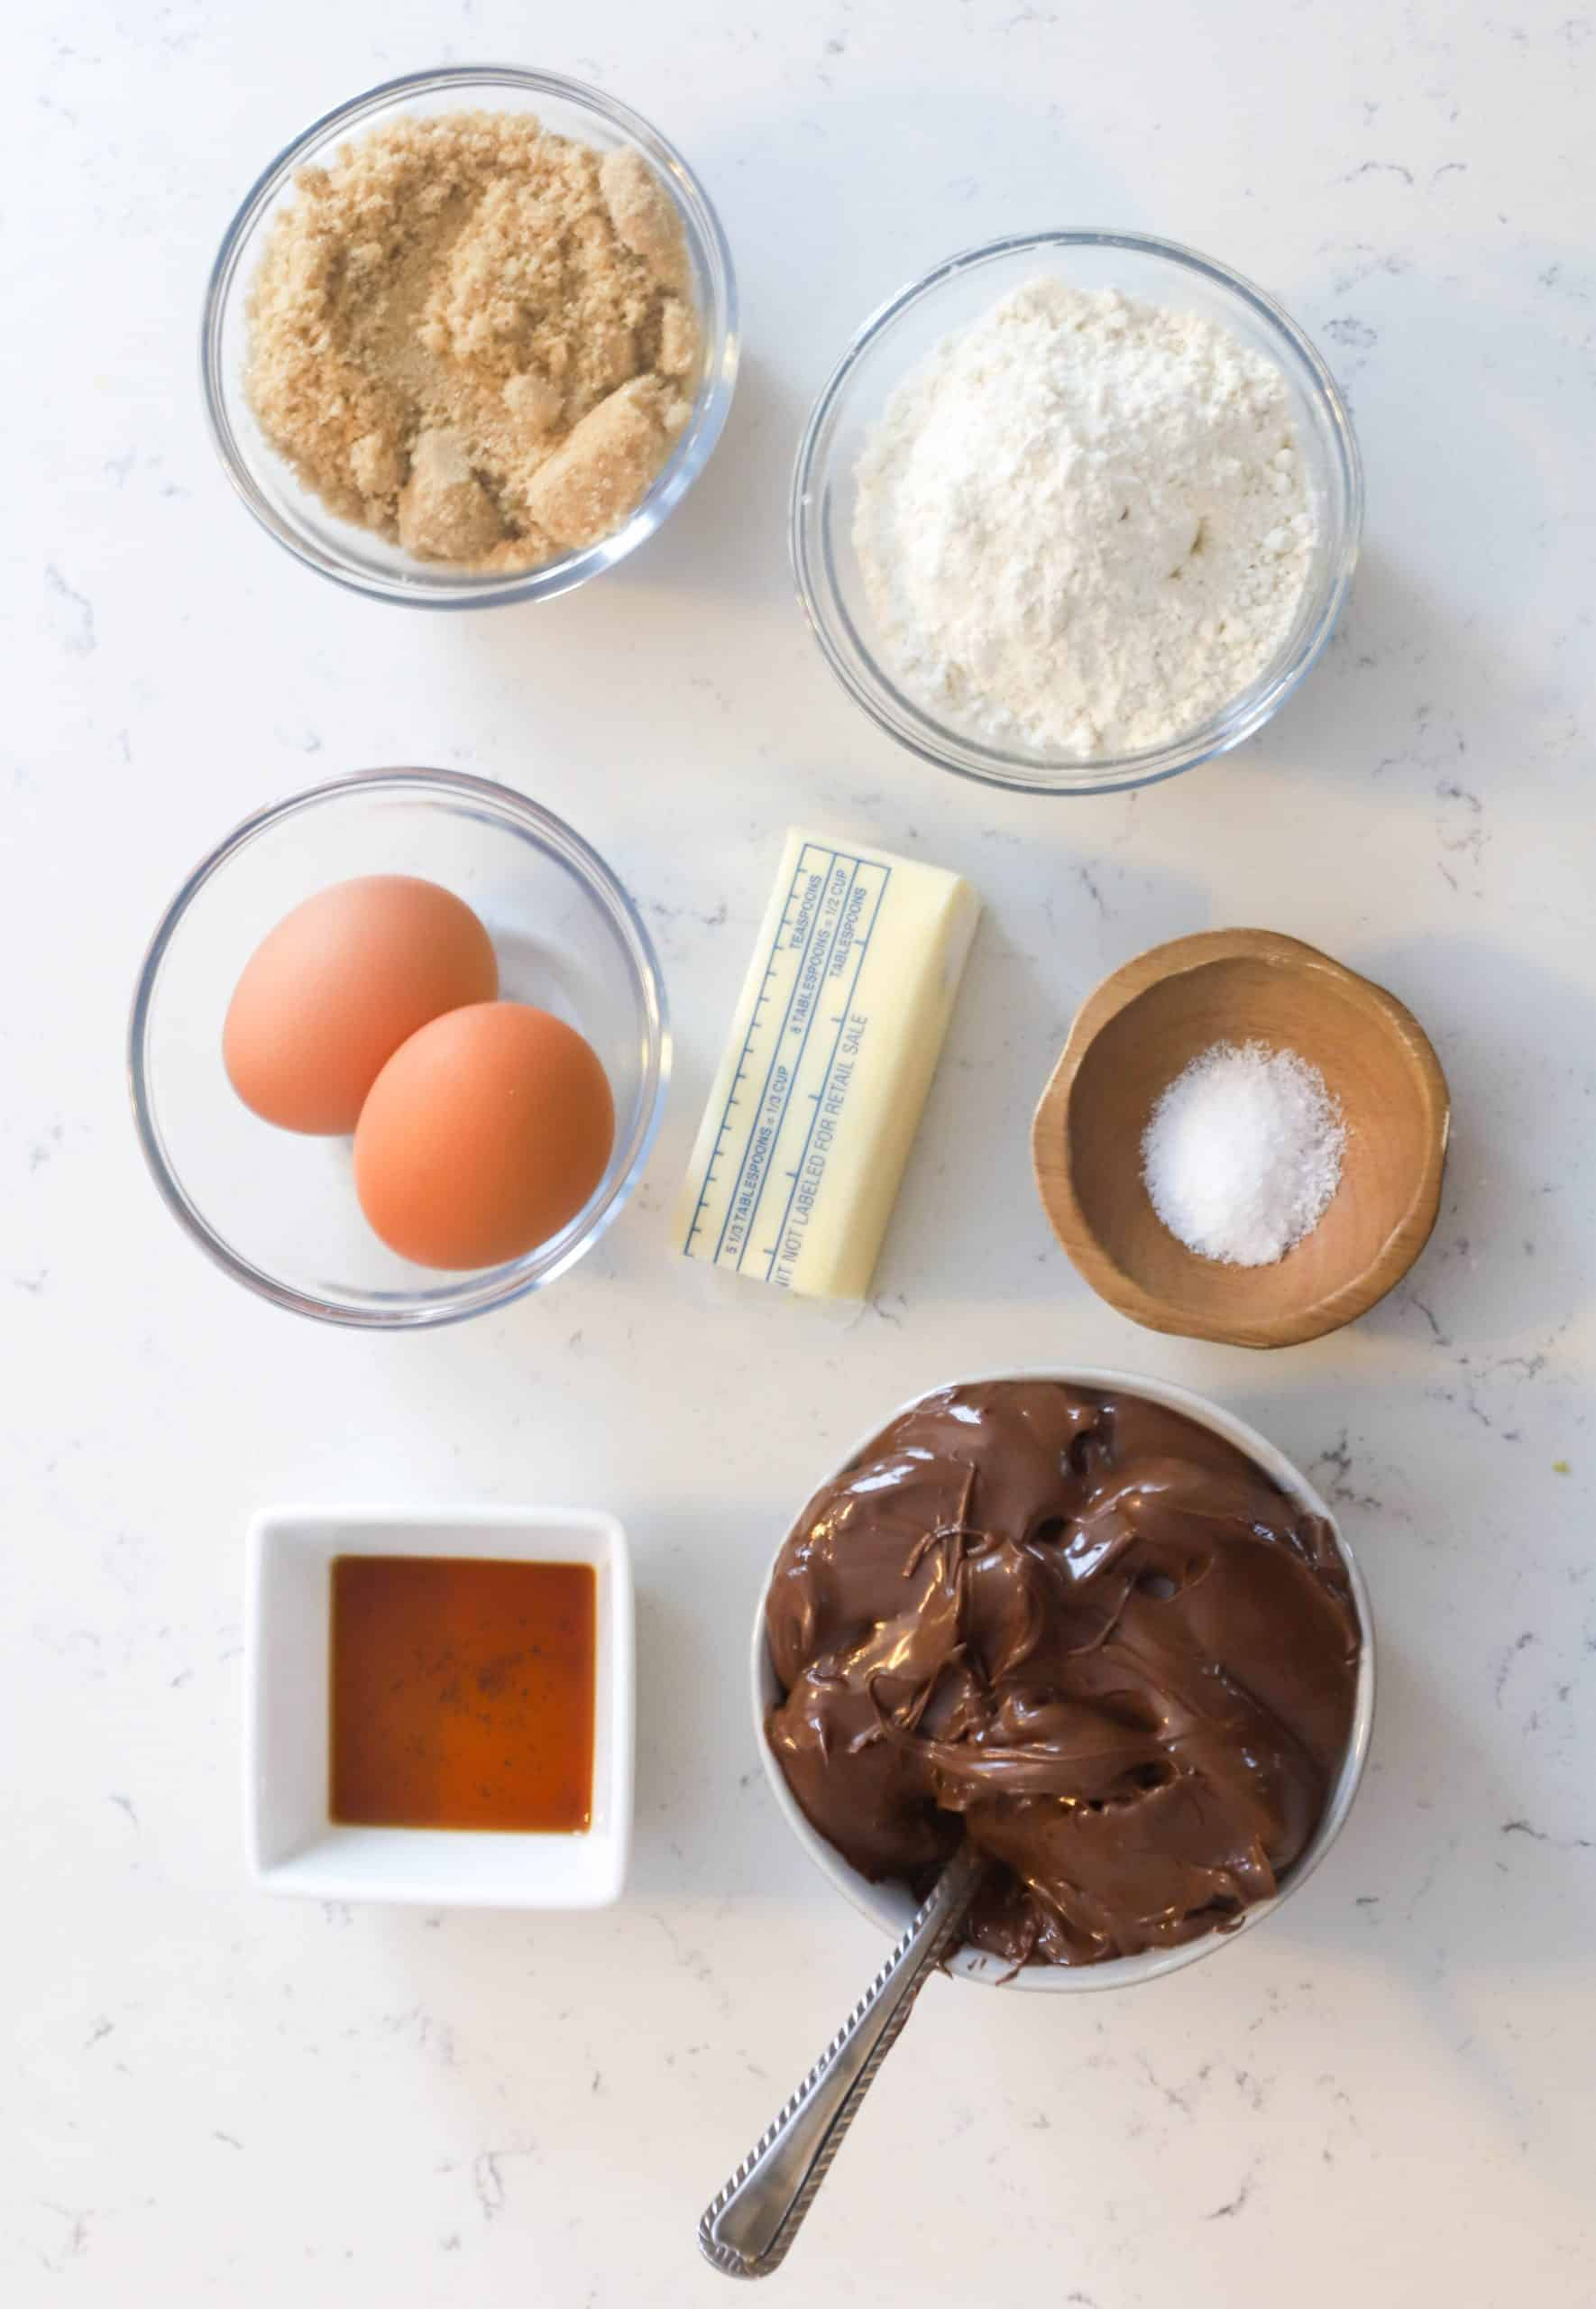 ingredients prepped in small bowls for nutella brownie recipe